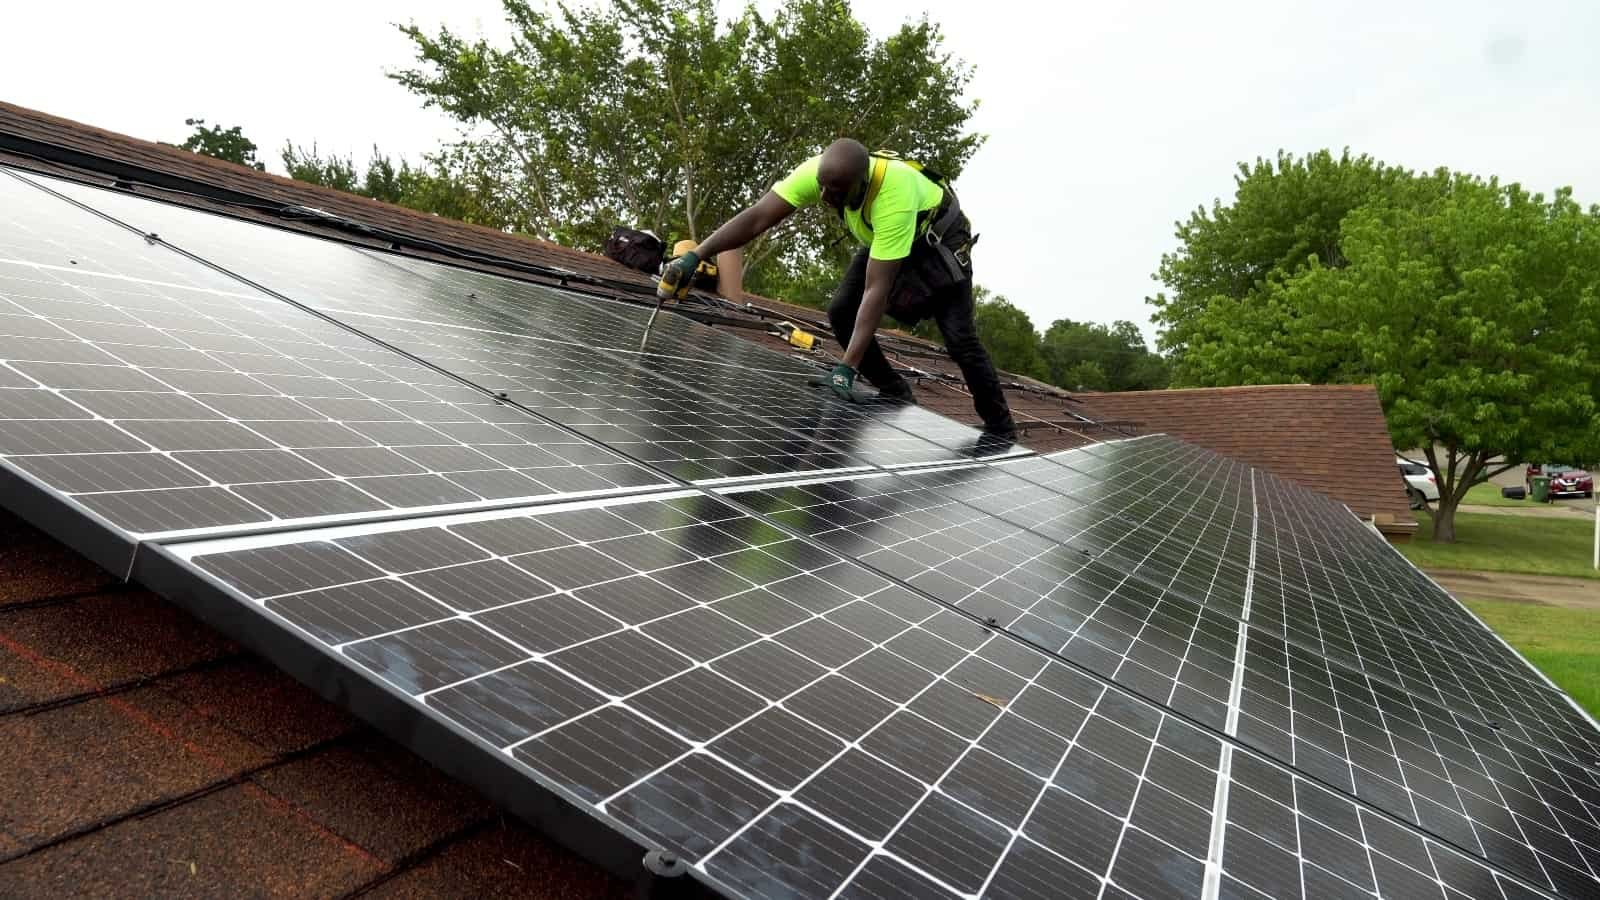 A man is installing solar panels on top of a roof.